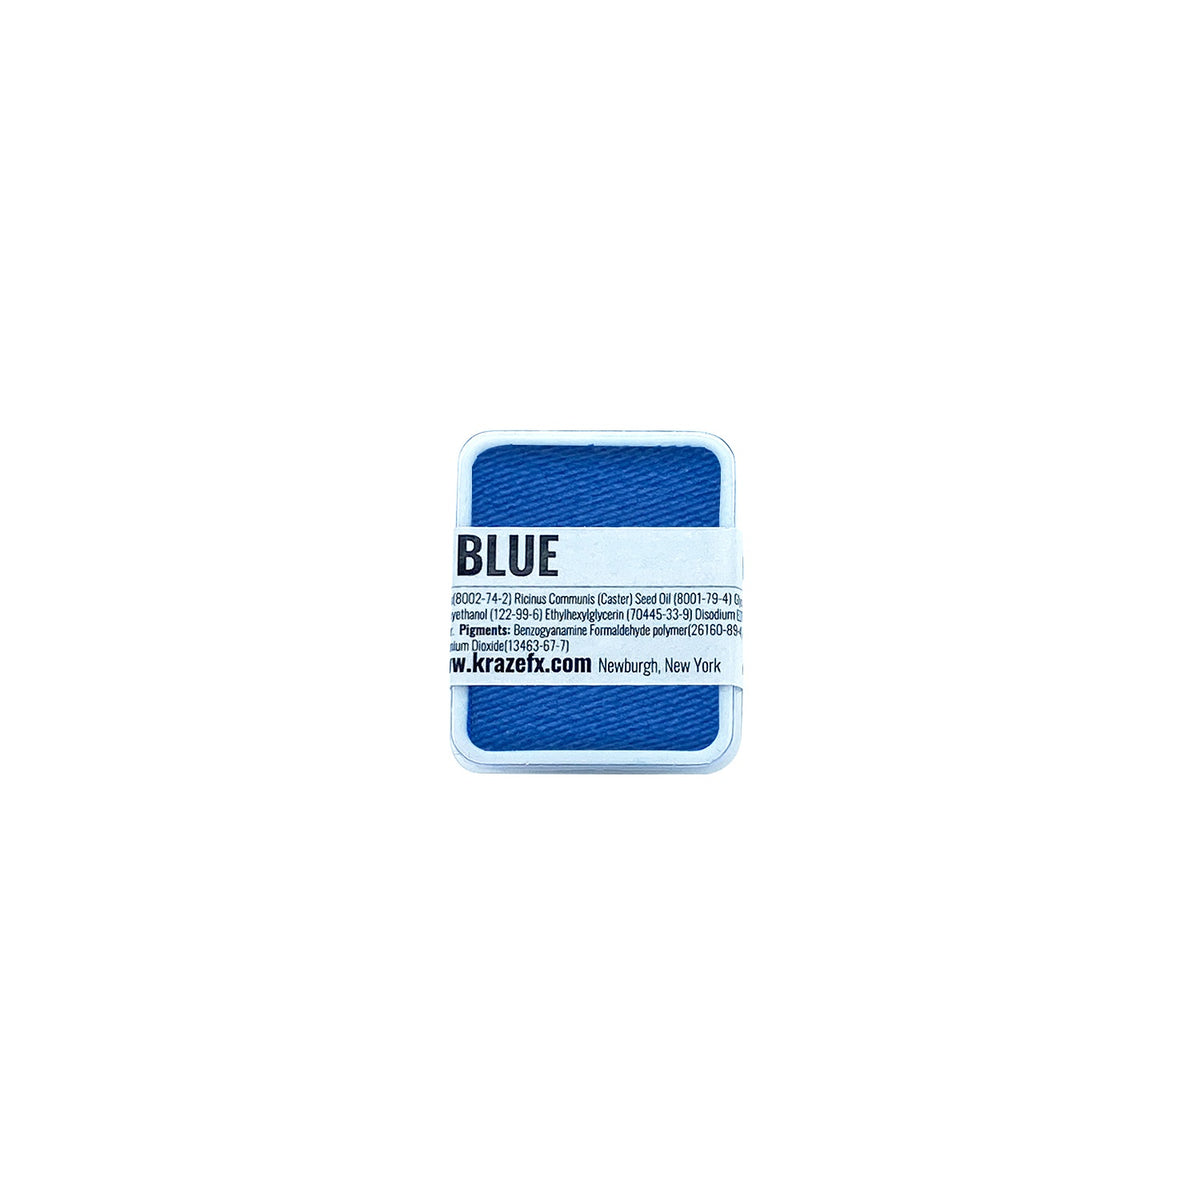 Kraze FX Face Paint Palette Refill - Neon Blue (0.21 oz/6 gm)